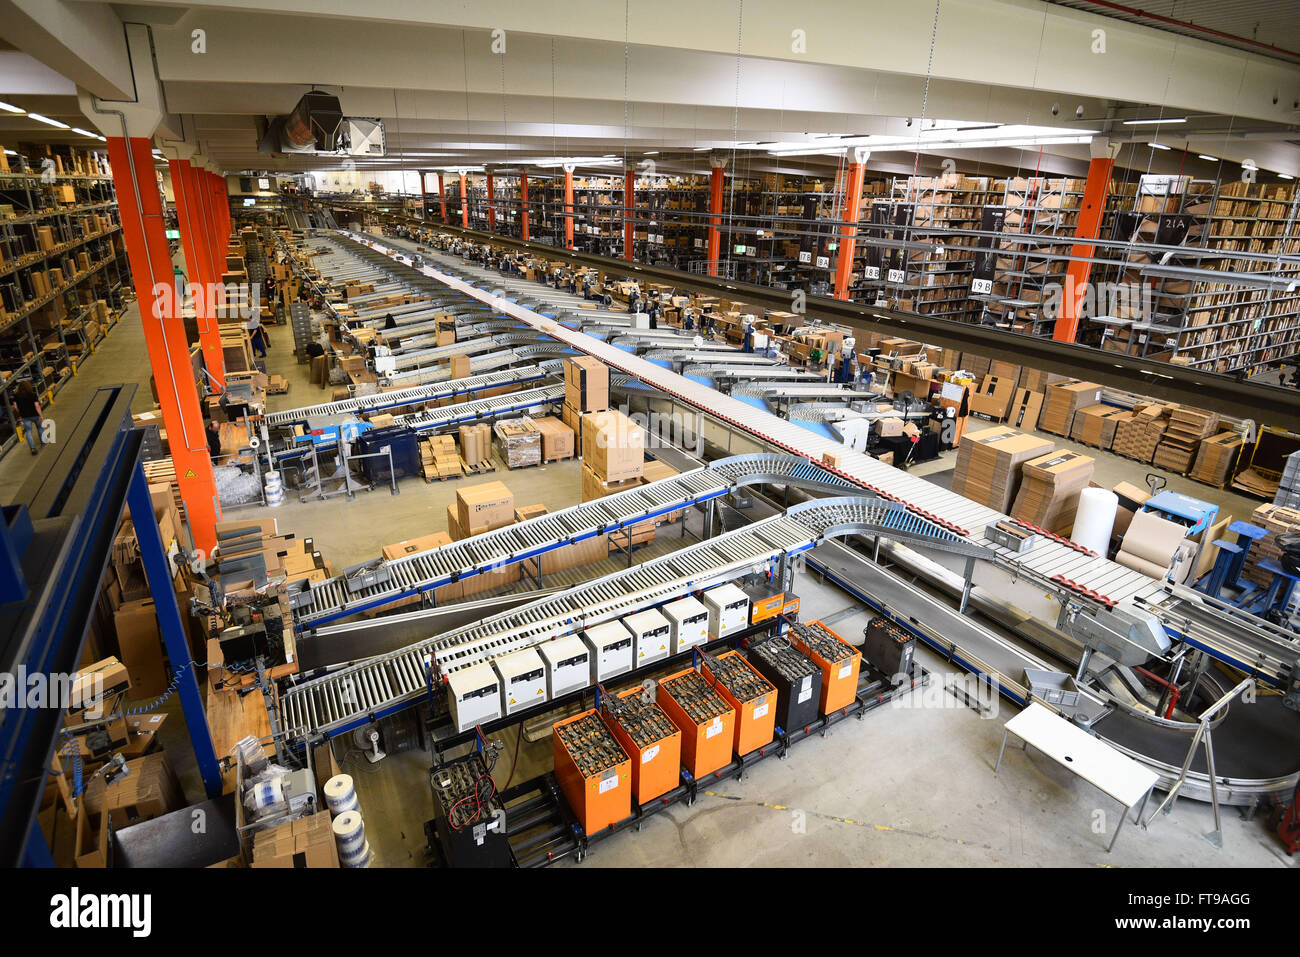 Treppendorf, Germany. 24th Mar, 2016. Numerous boxes can be seen in a warehouse at the Musikhaus Thomann in Treppendorf, - Stock Image